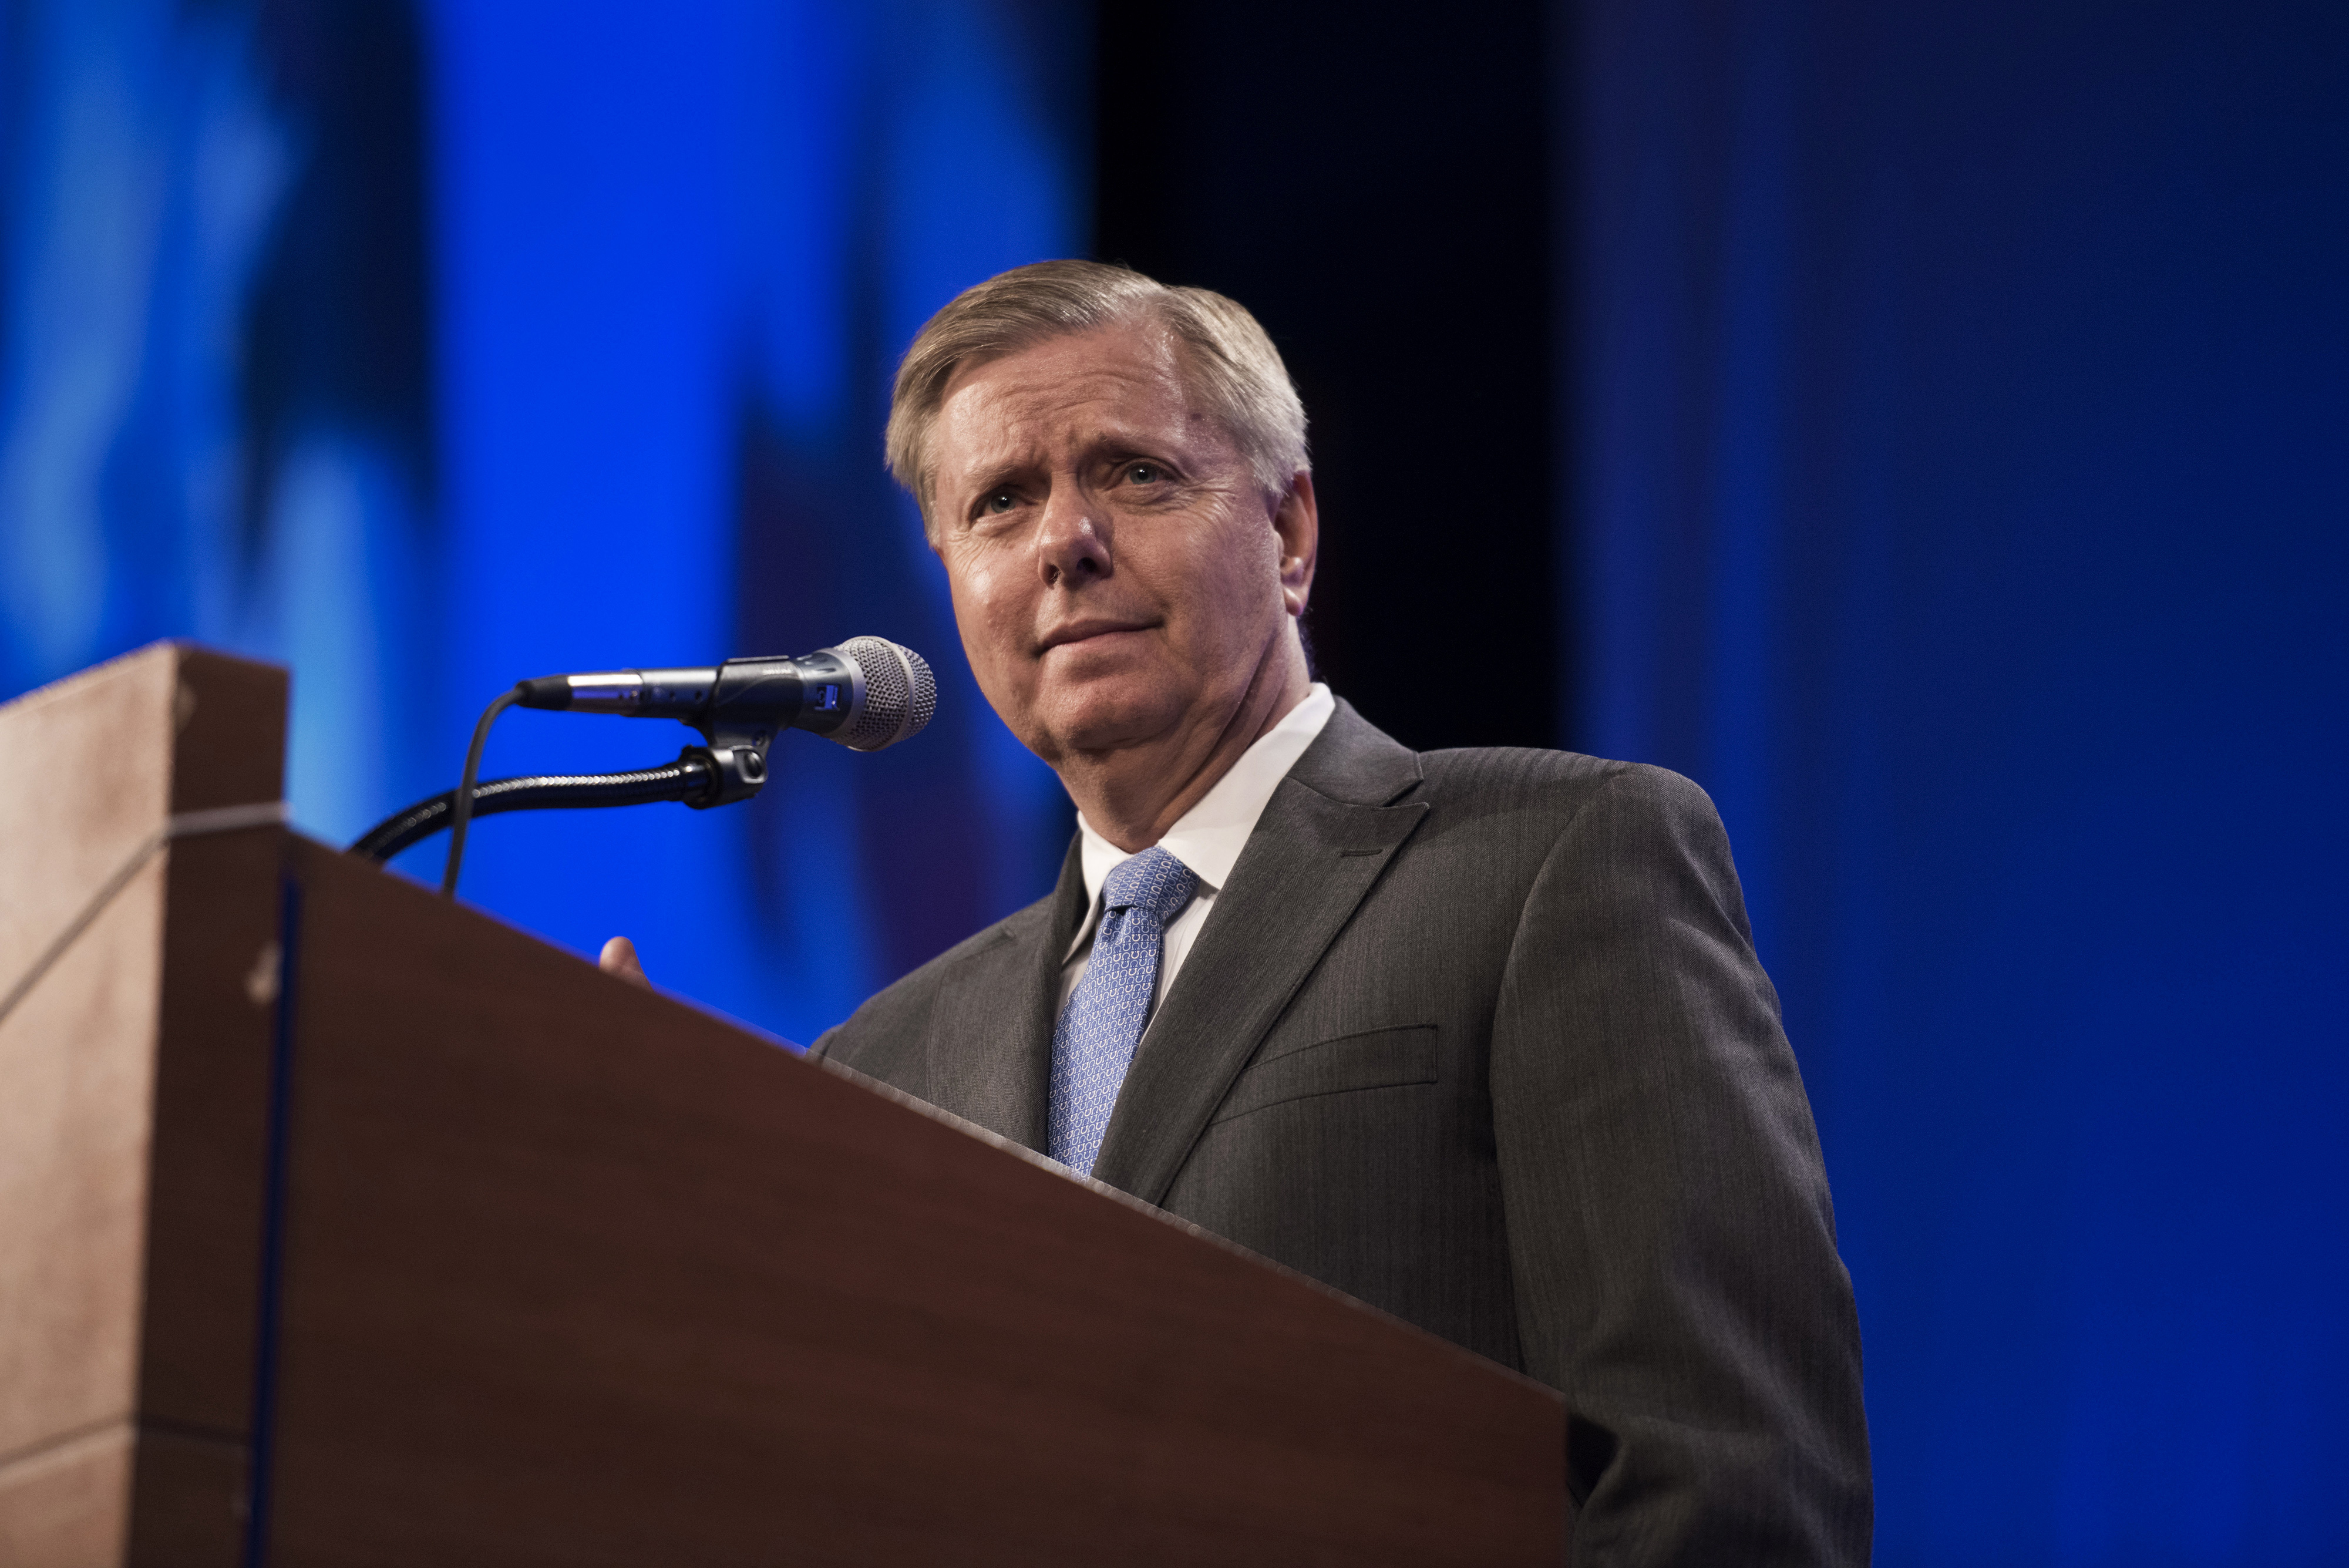 Senator Lindsey Graham, a Republican from South Carolina, speaks during the Republican Party of Iowa's Lincoln Dinner in Des Moines, Iowa